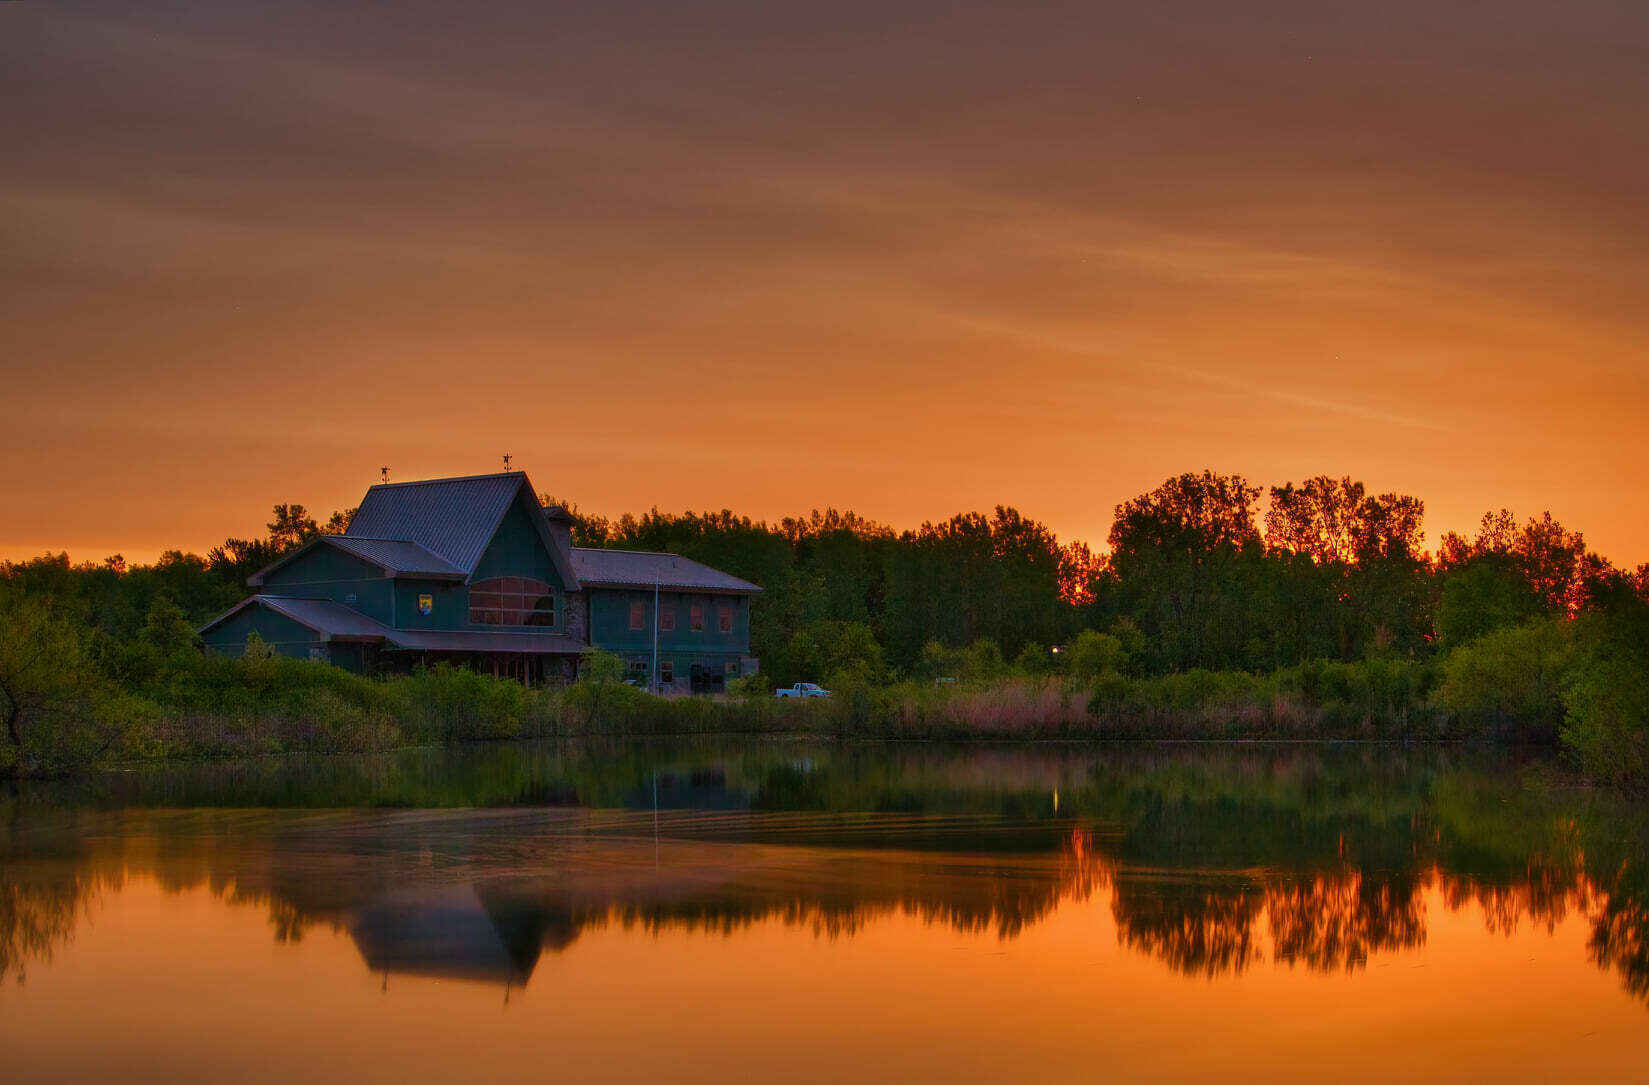 Protect and conserve the critical Lake Erie marshes for wildlife and people. image